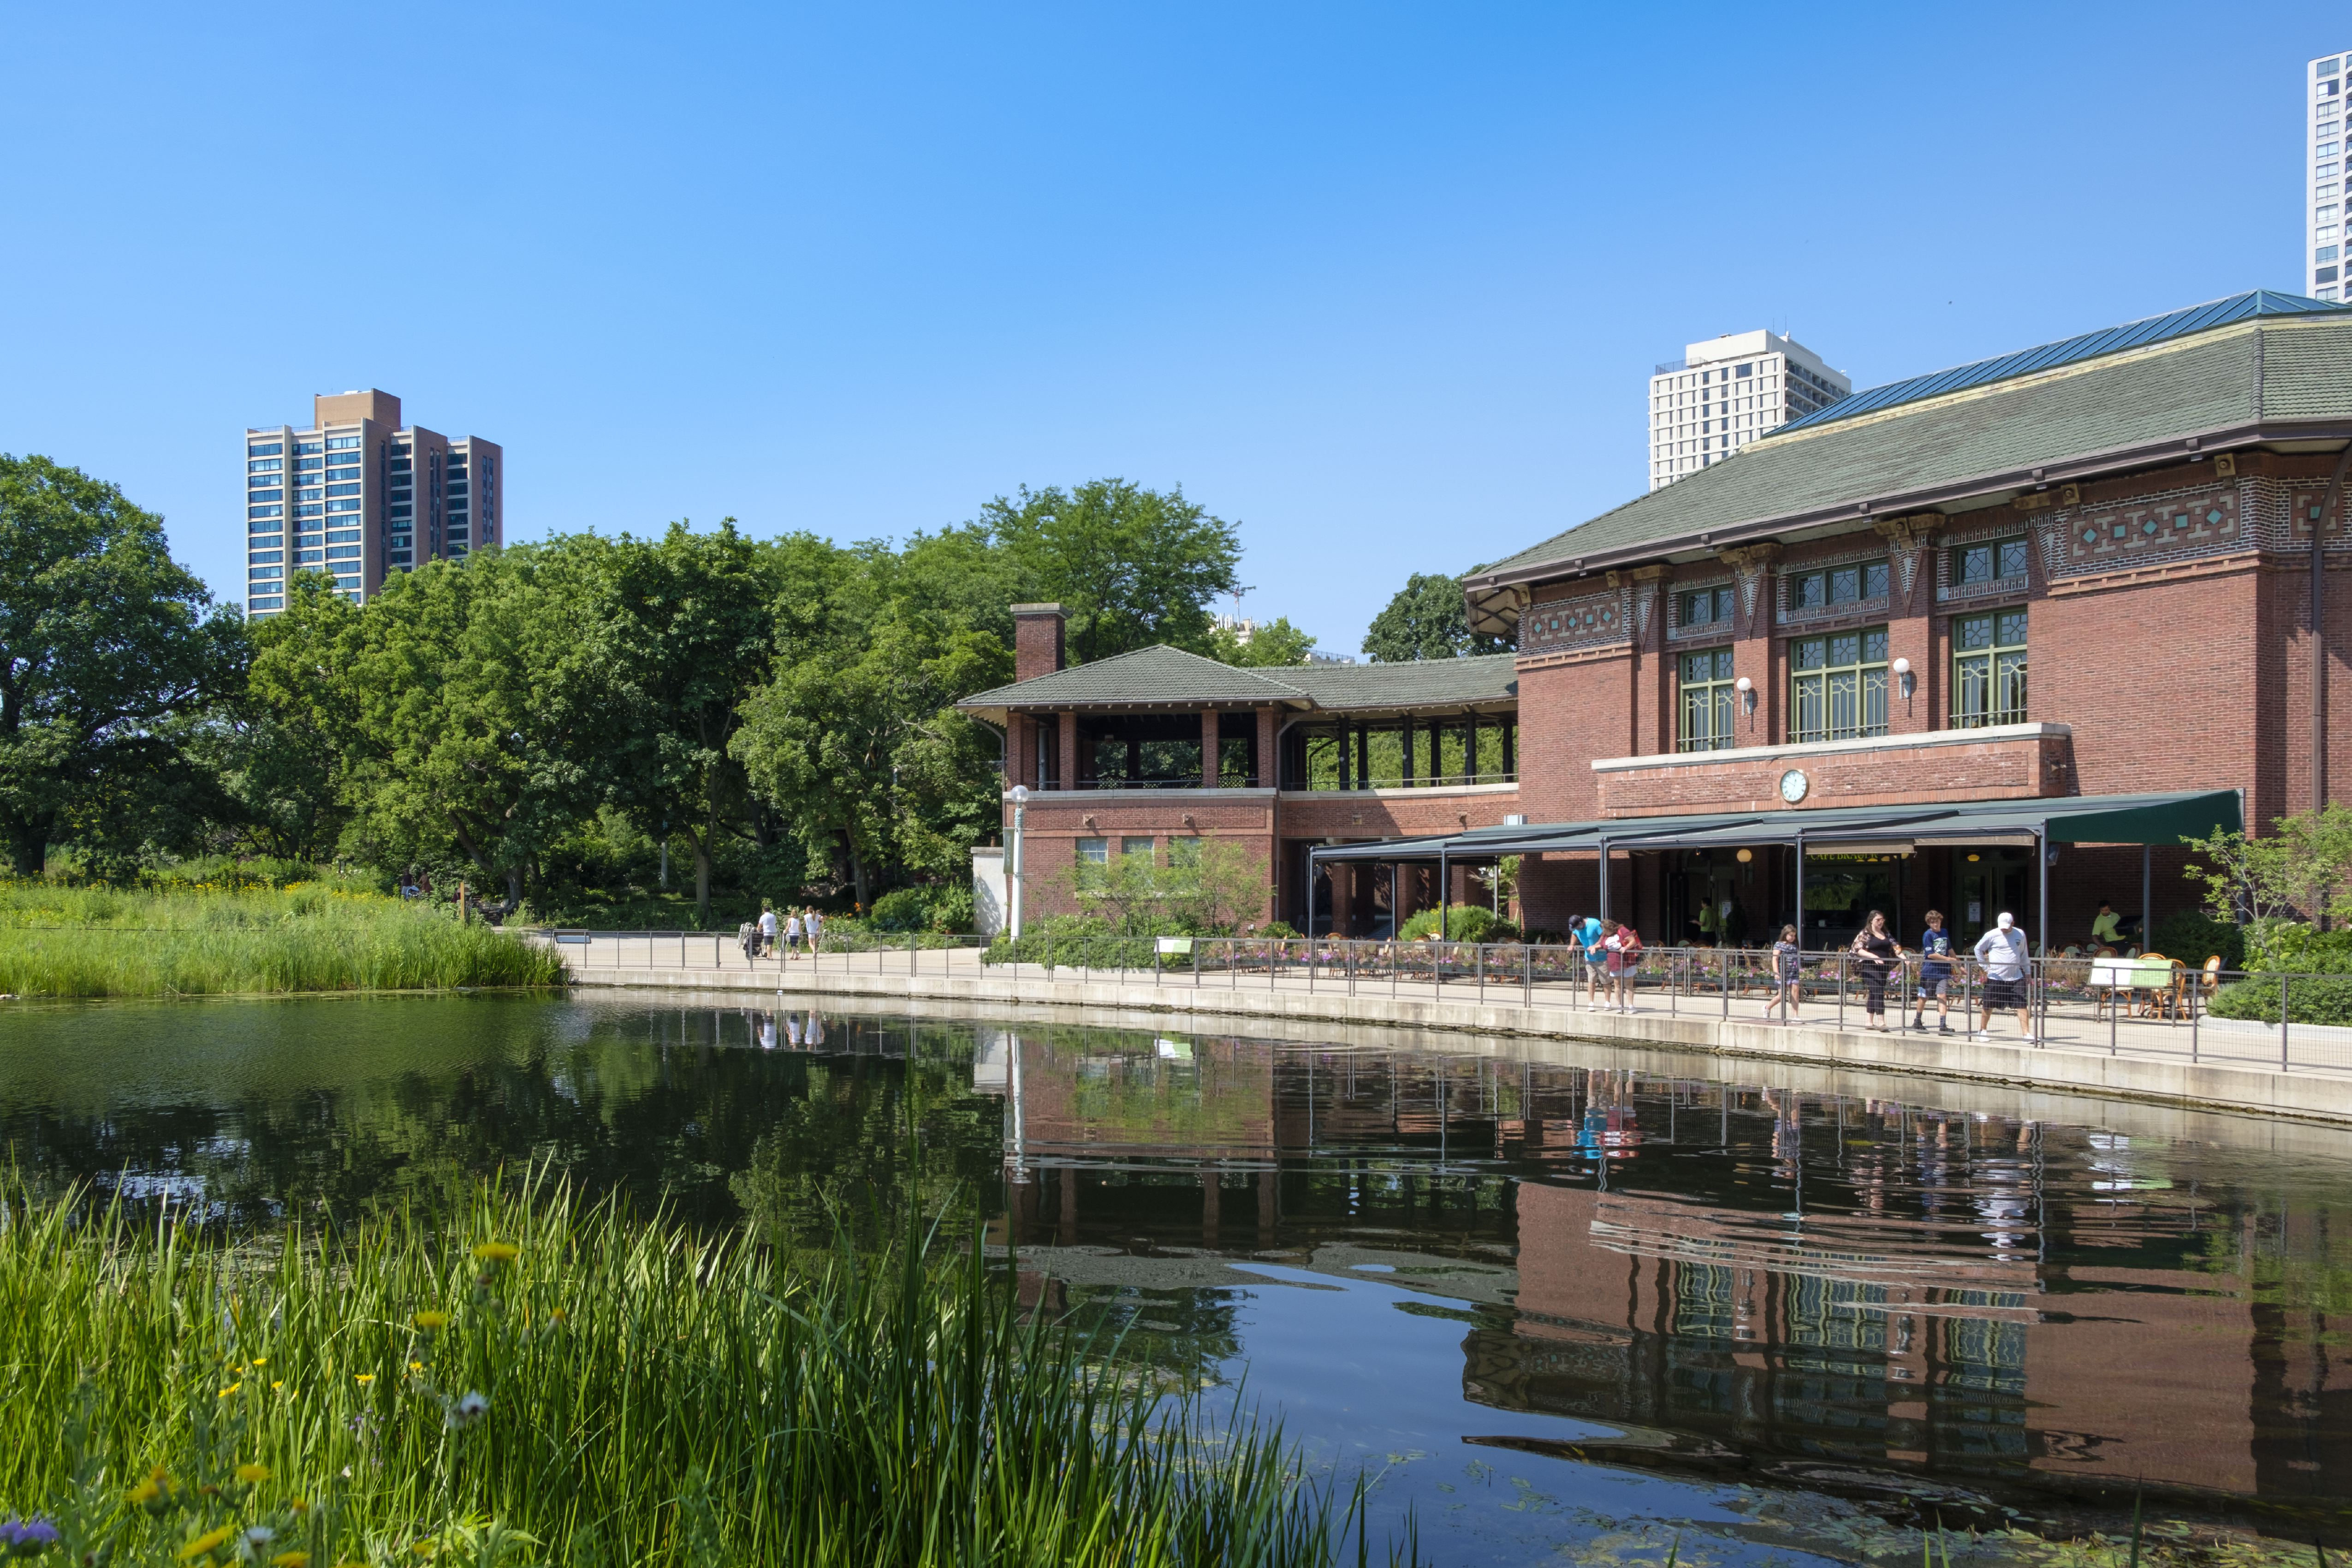 Discover 10 Prairie School buildings by Frank Lloyd Wright disciples